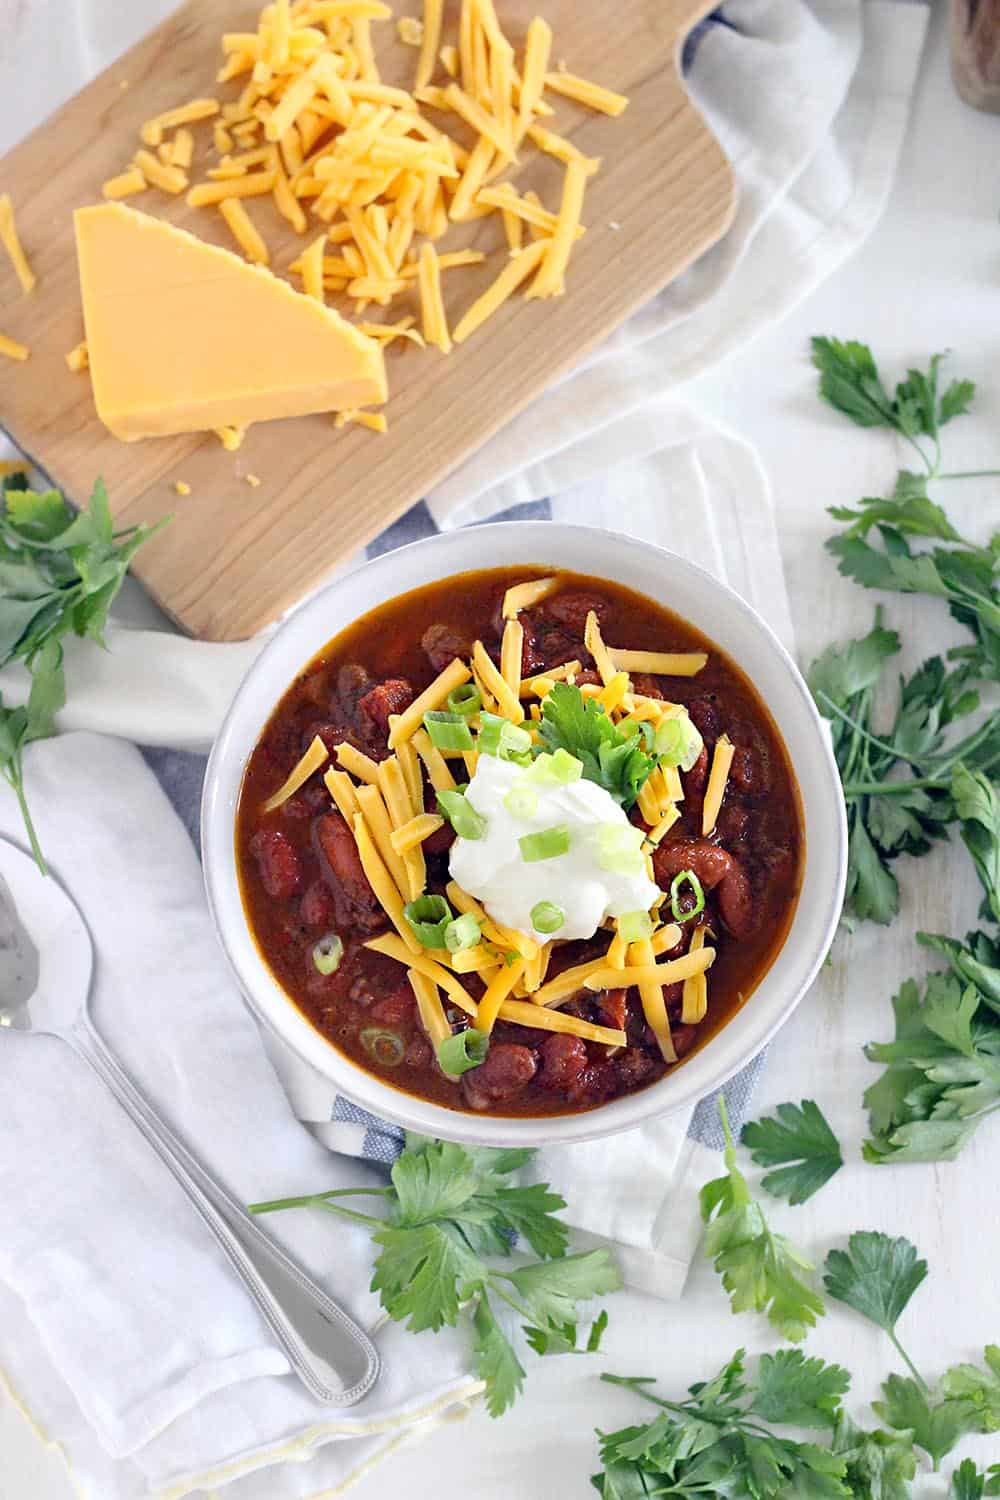 This Instant Pot Chili is made with ground beef and dry kidney beans, and comes together in less than an hour! It's cheap, healthy, and DELICIOUS.